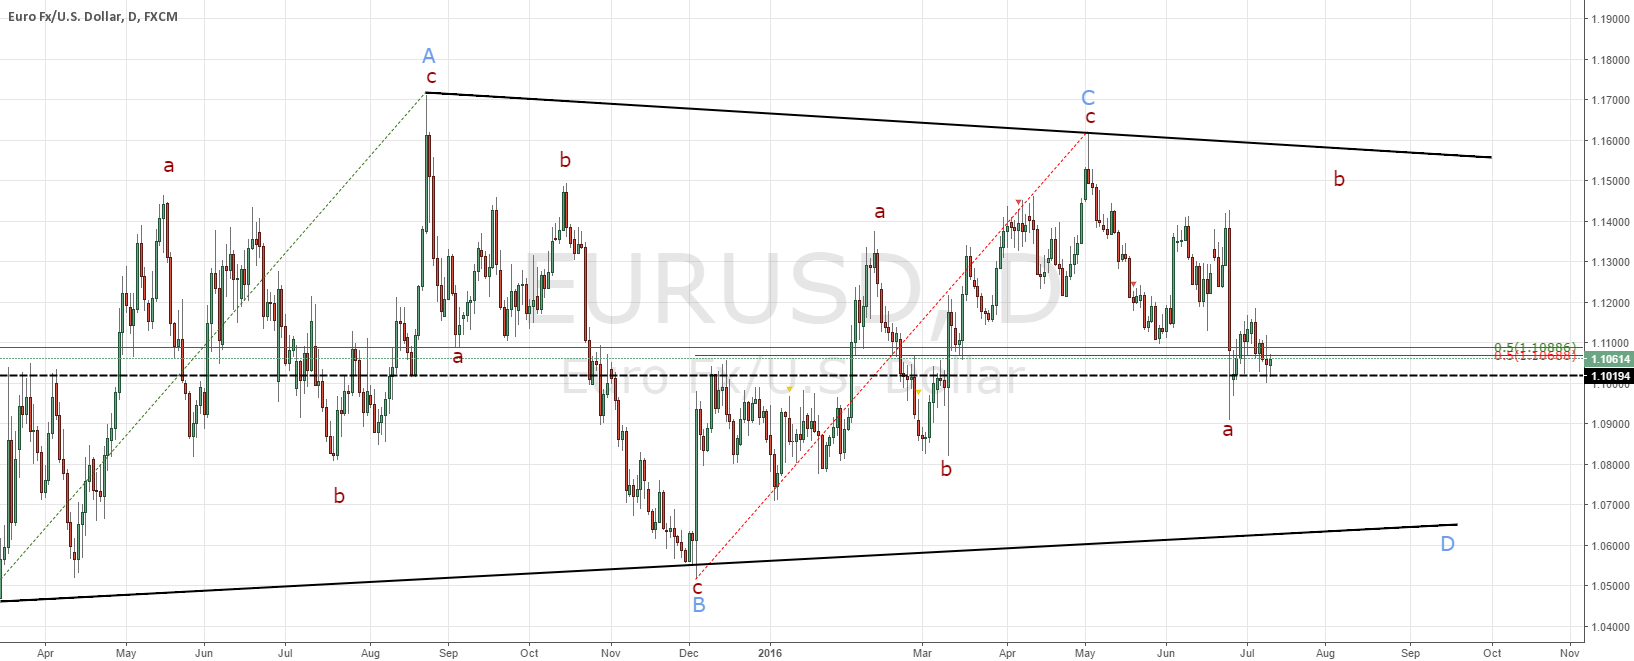 EURUSD bigger picture follow up and short term set-up